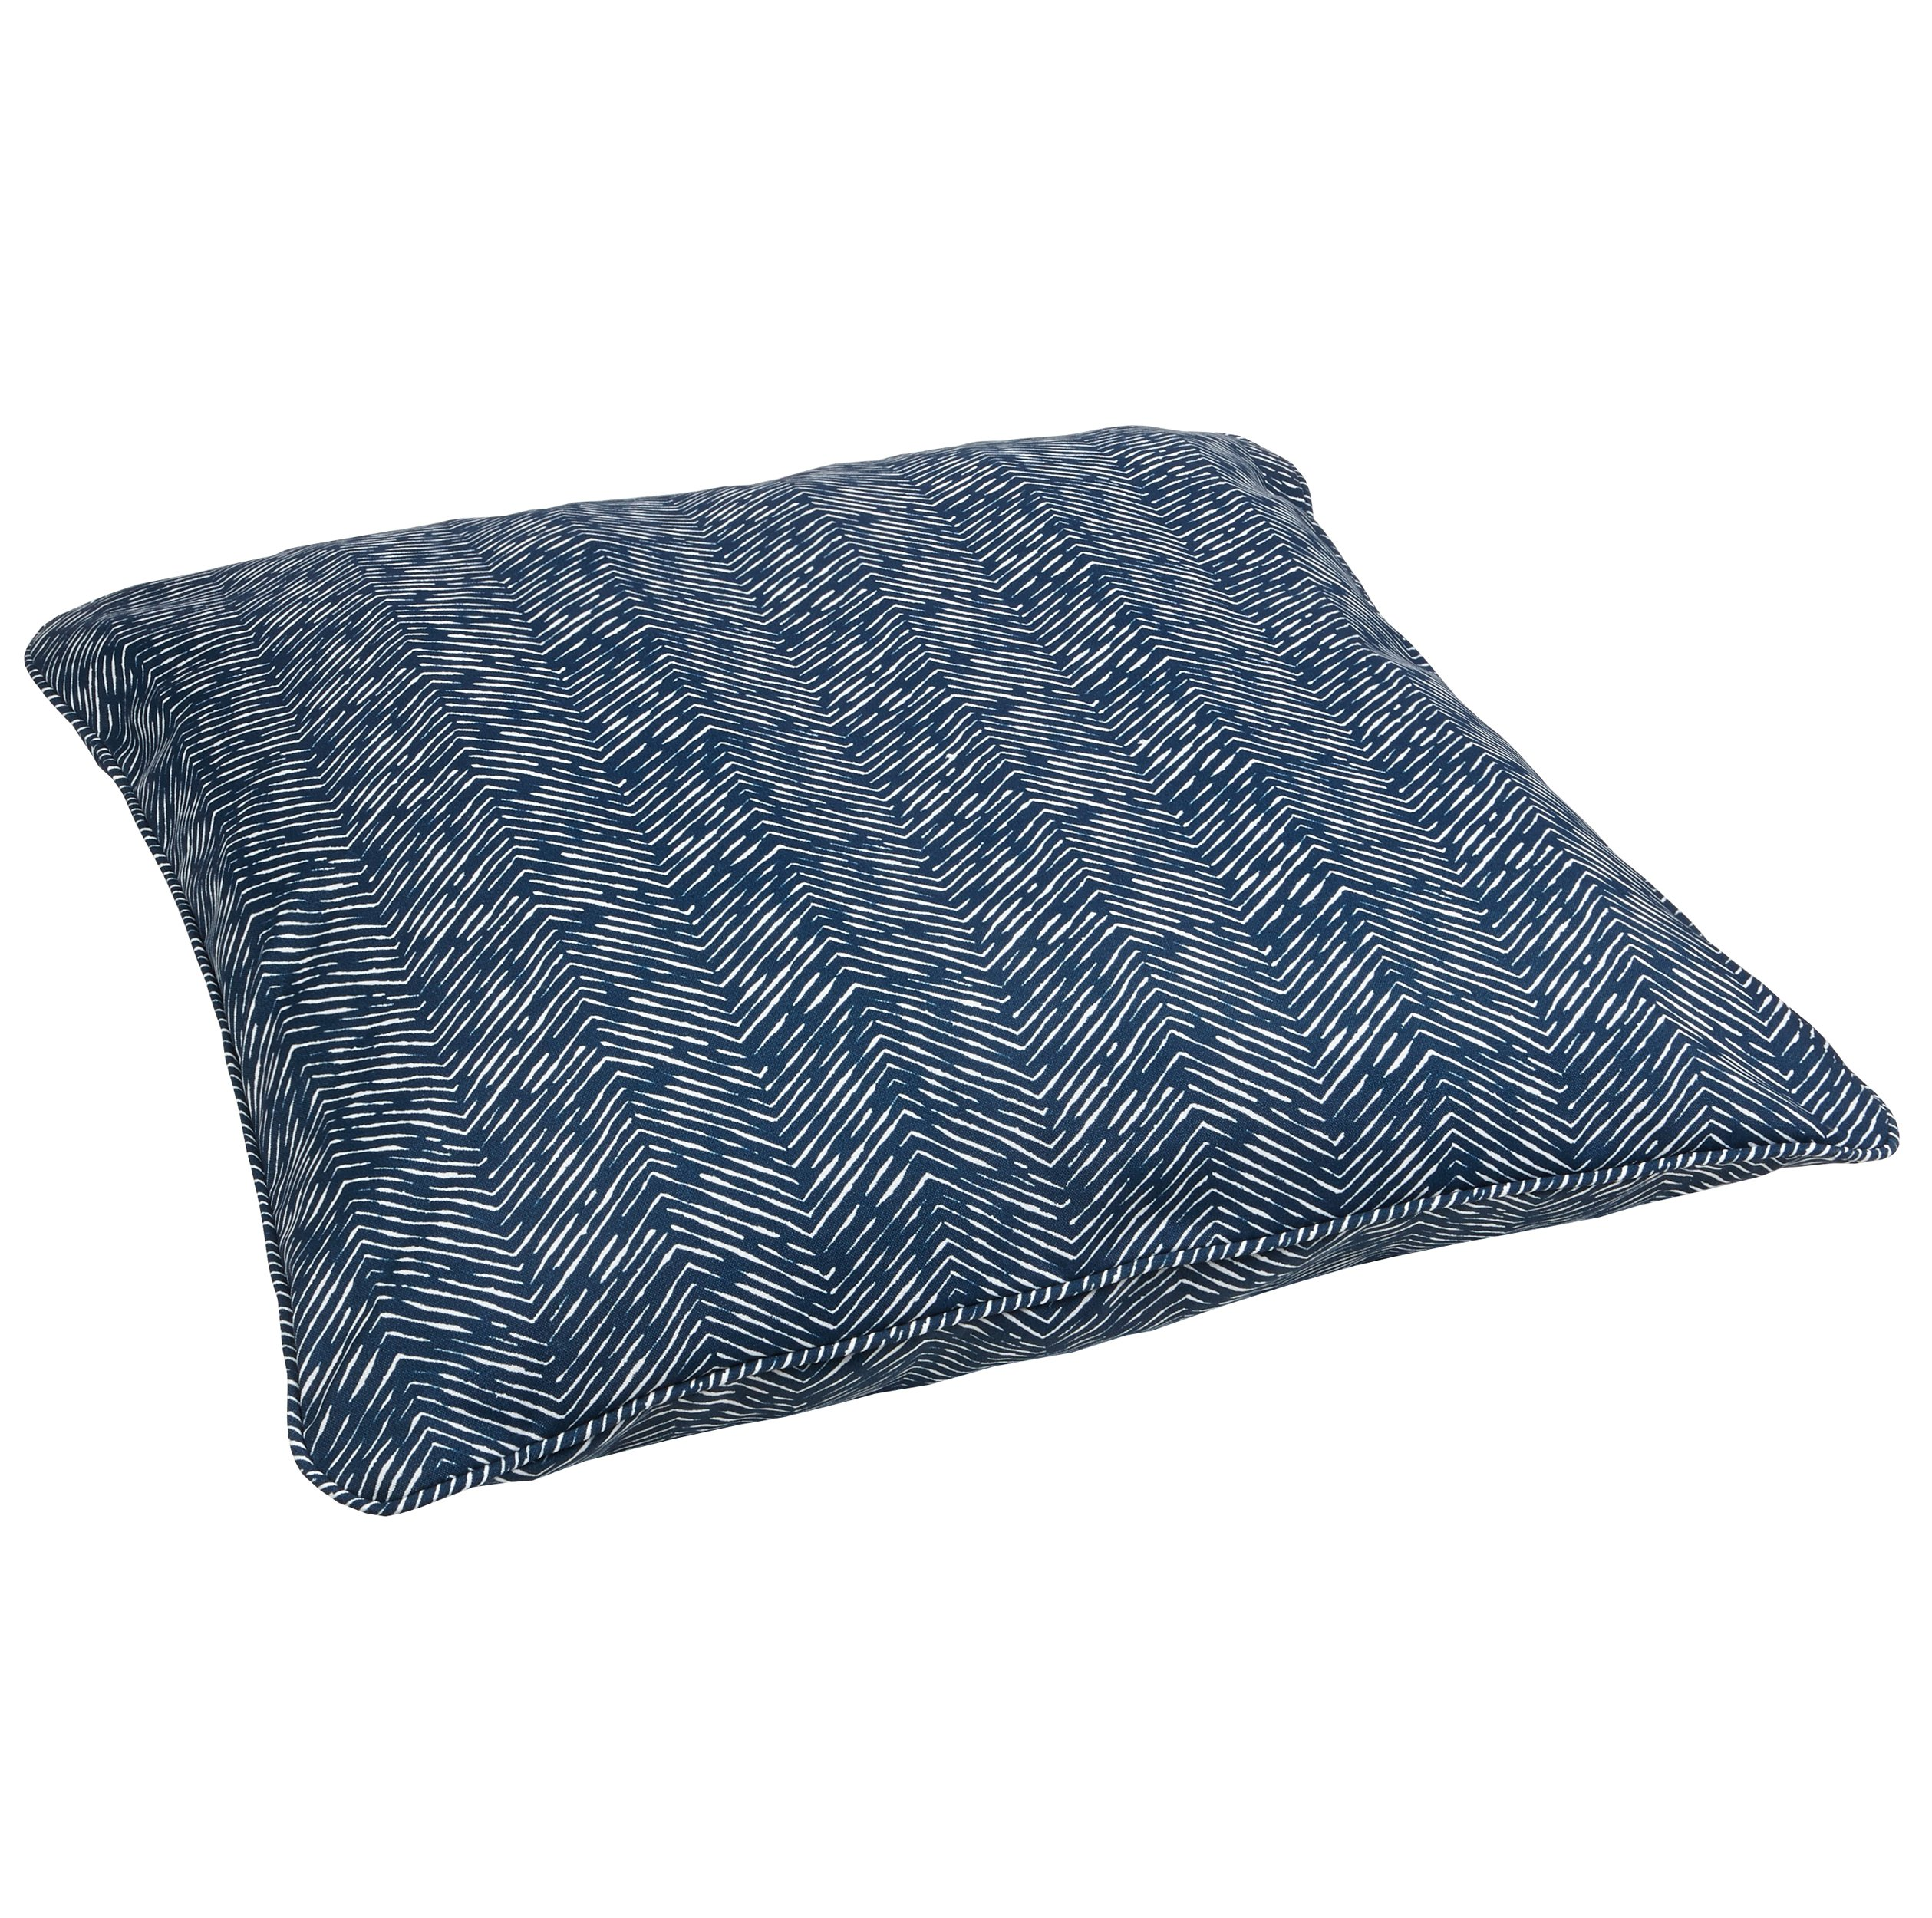 Mozaic AZPS2391 Indoor Outdoor Square Floor Pillow with Corded Edges, 26 x 26, navy - Color: Navy Herringbone Materials: Polyester fabric, filled with 100% recycled polyester fiber Weather, mildew, fade and stain resistant with UV protection - patio, outdoor-throw-pillows, outdoor-decor - 91sAprWzptL -